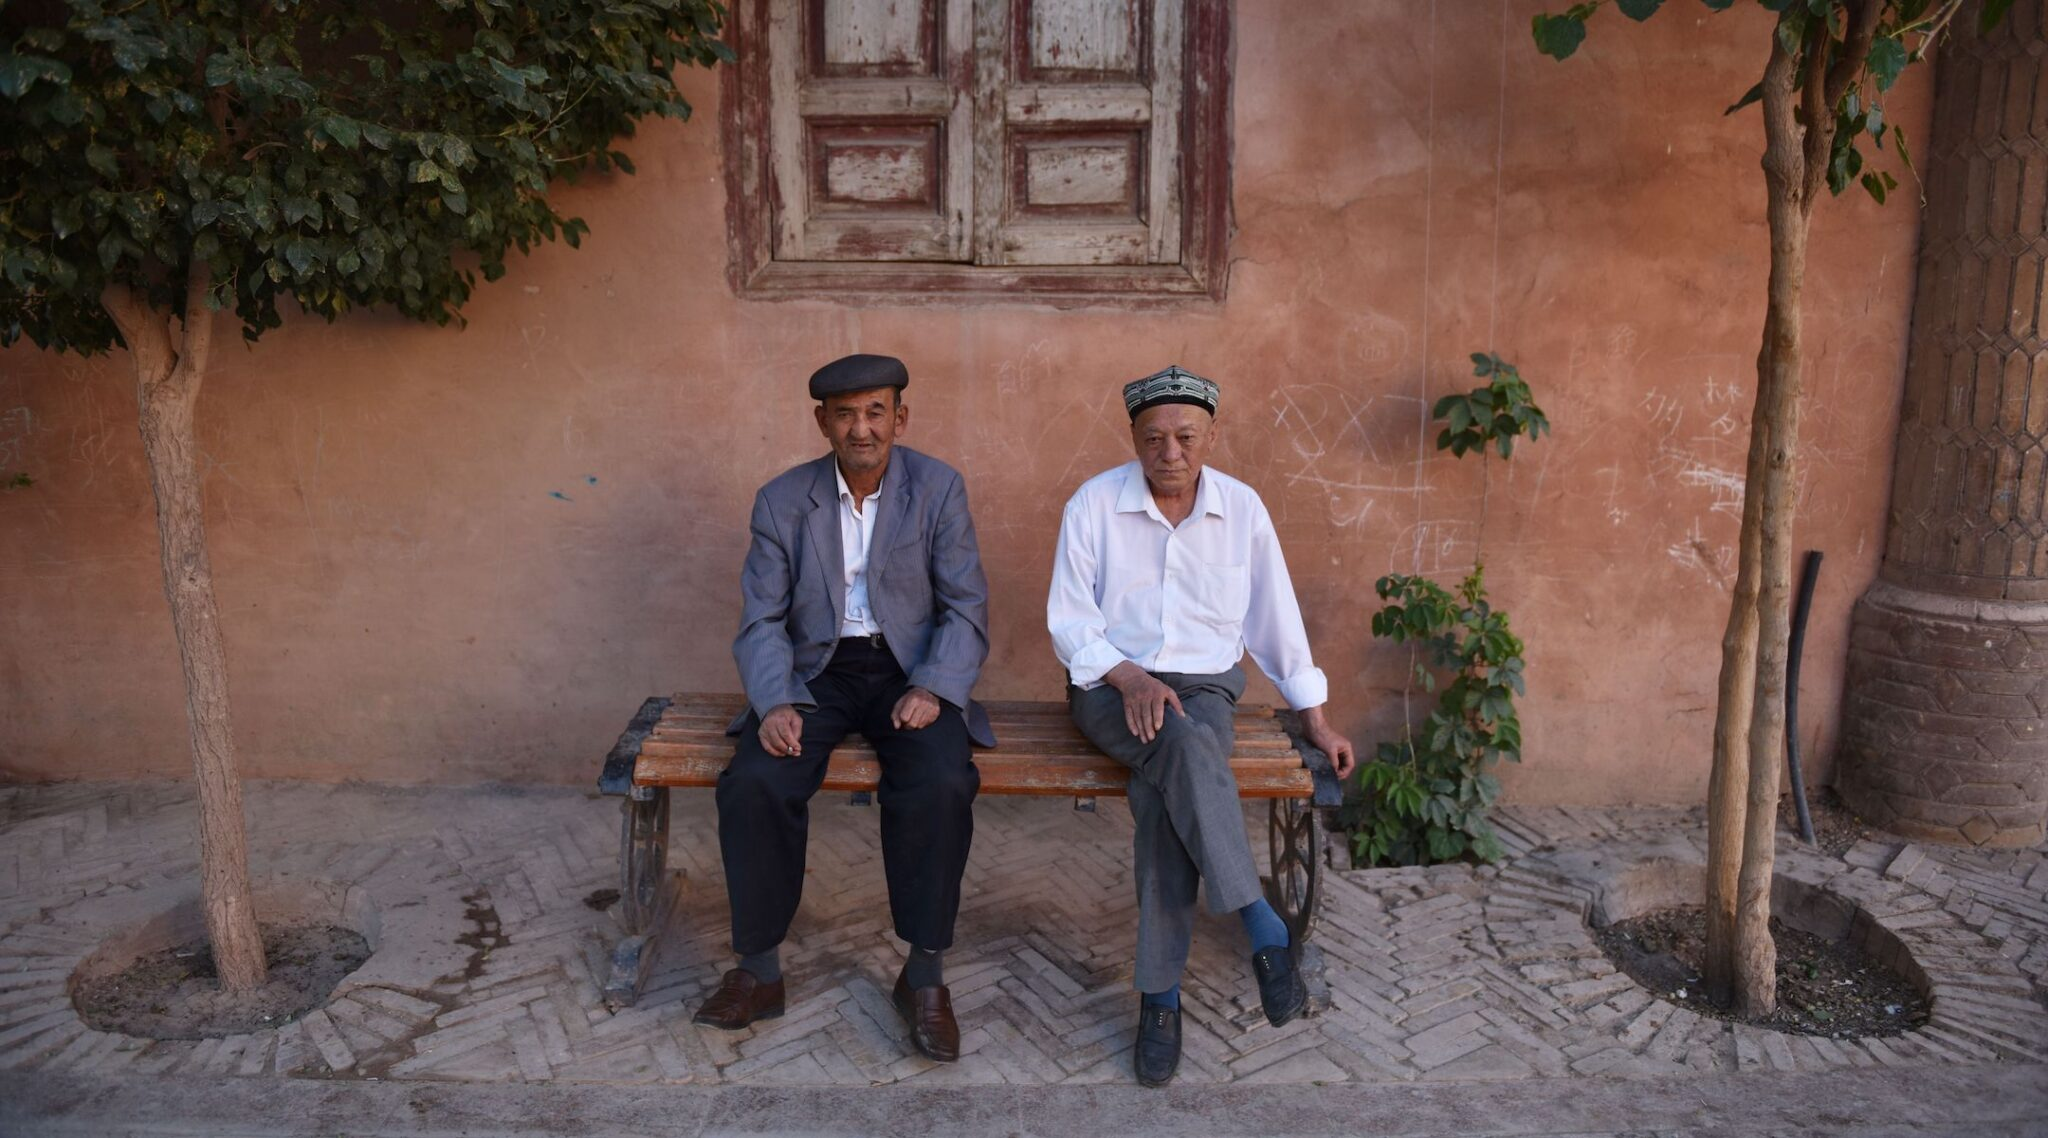 Uighur men rest in the restored old city area of Kashgar, in China's western Xinjiang region, in 2019. (Greg Baker/AFP via Getty Images)